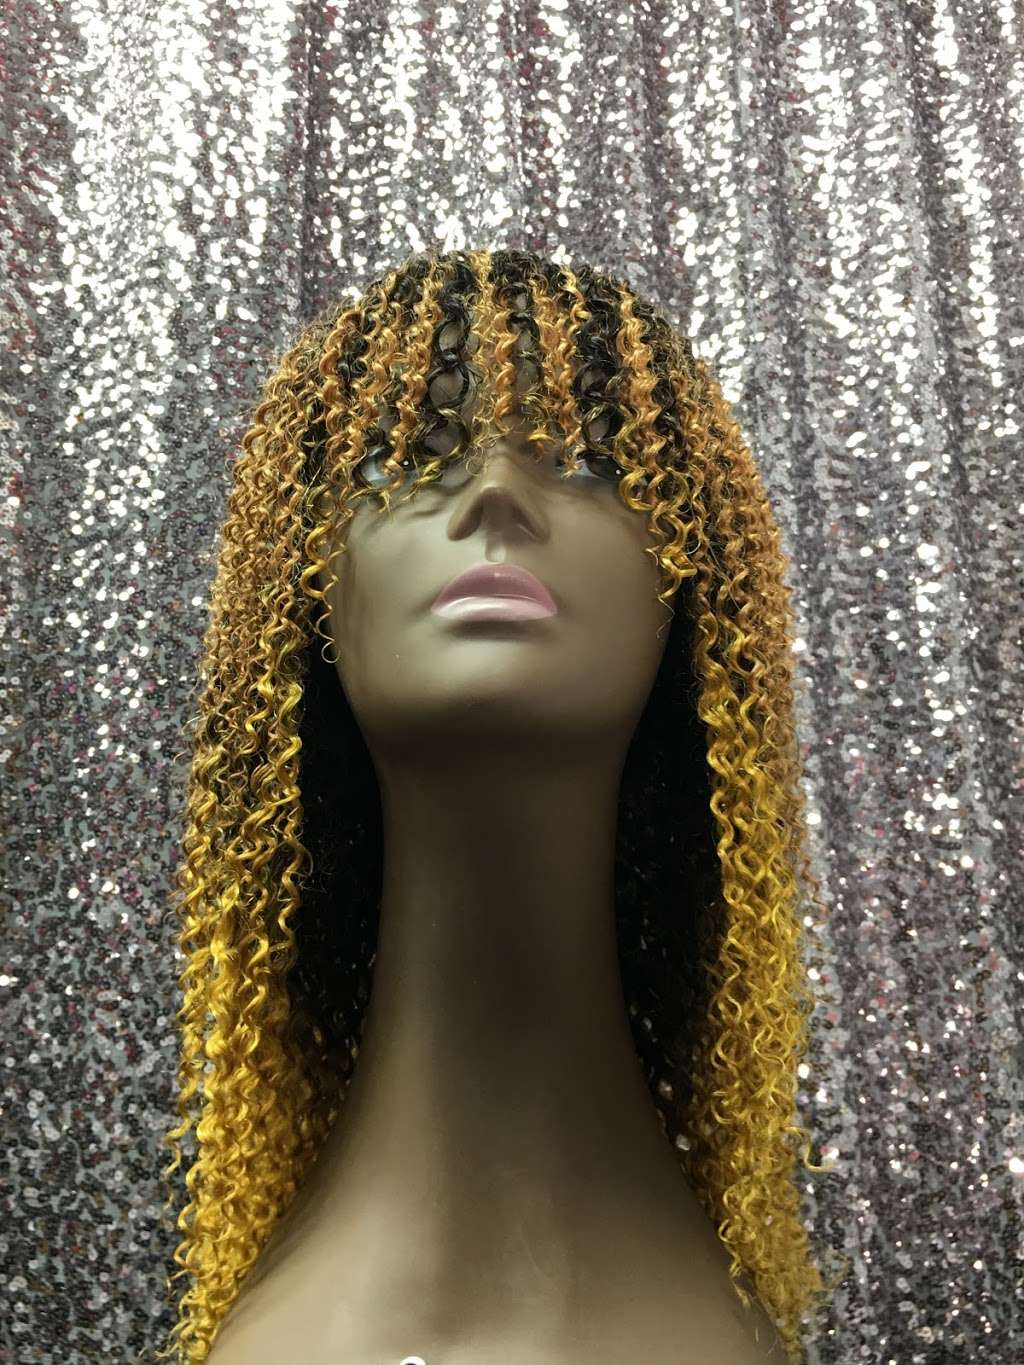 Luxury Wigs Outlet - shoe store  | Photo 3 of 10 | Address: 214 Huyler St, South Hackensack, NJ 07606, USA | Phone: (201) 880-4488